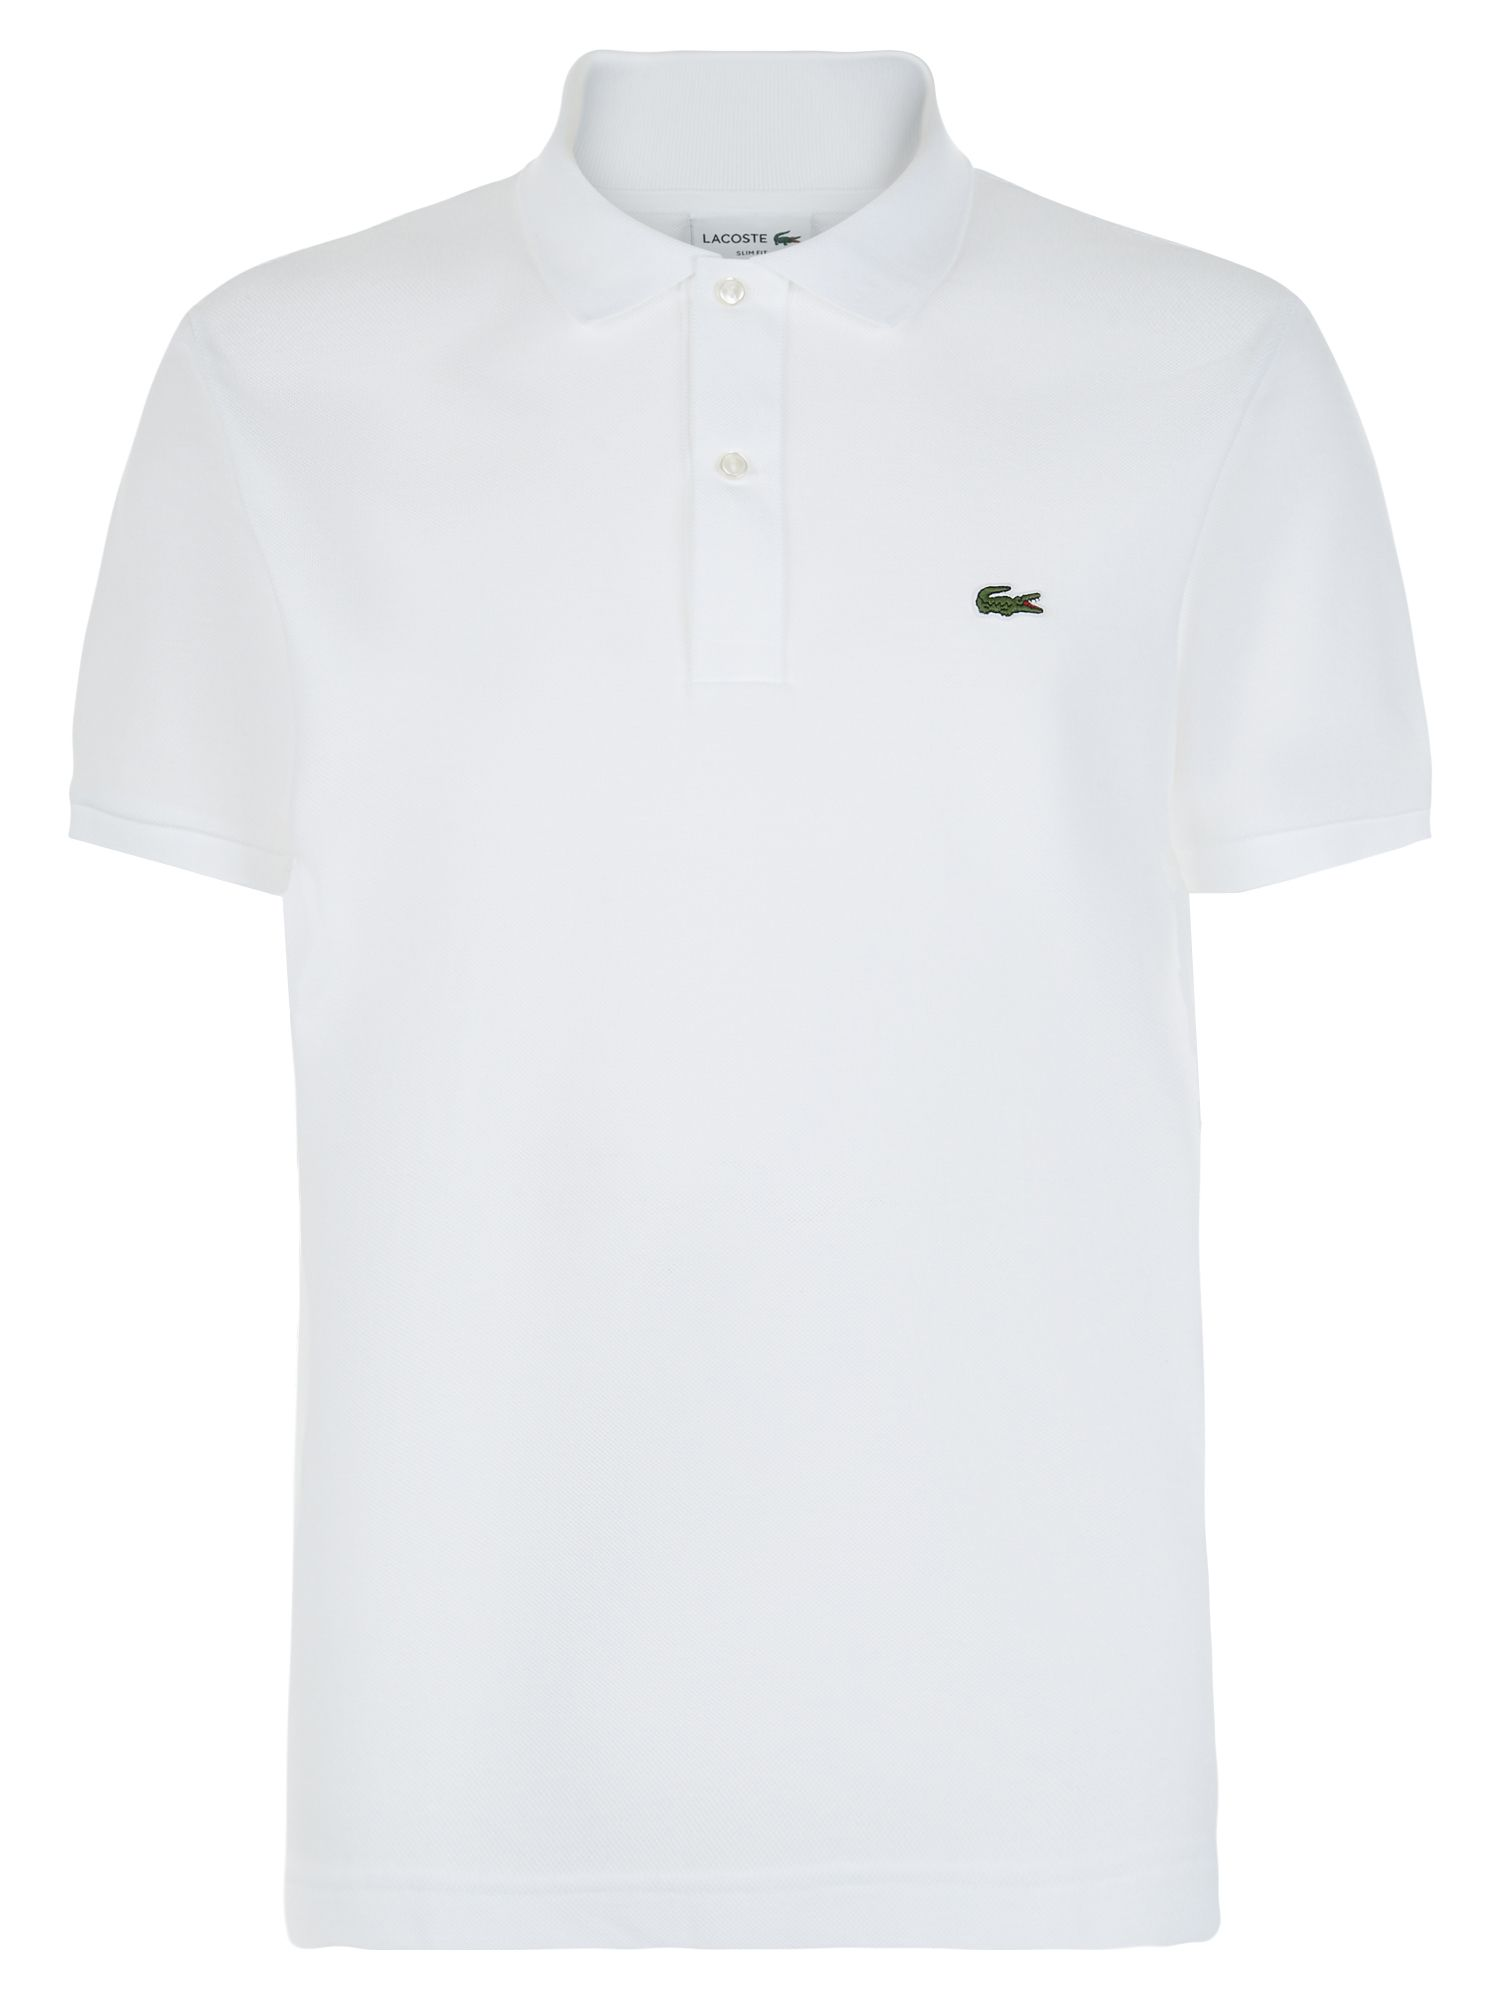 Men's Lacoste Slim Fit Polo in Pique, White